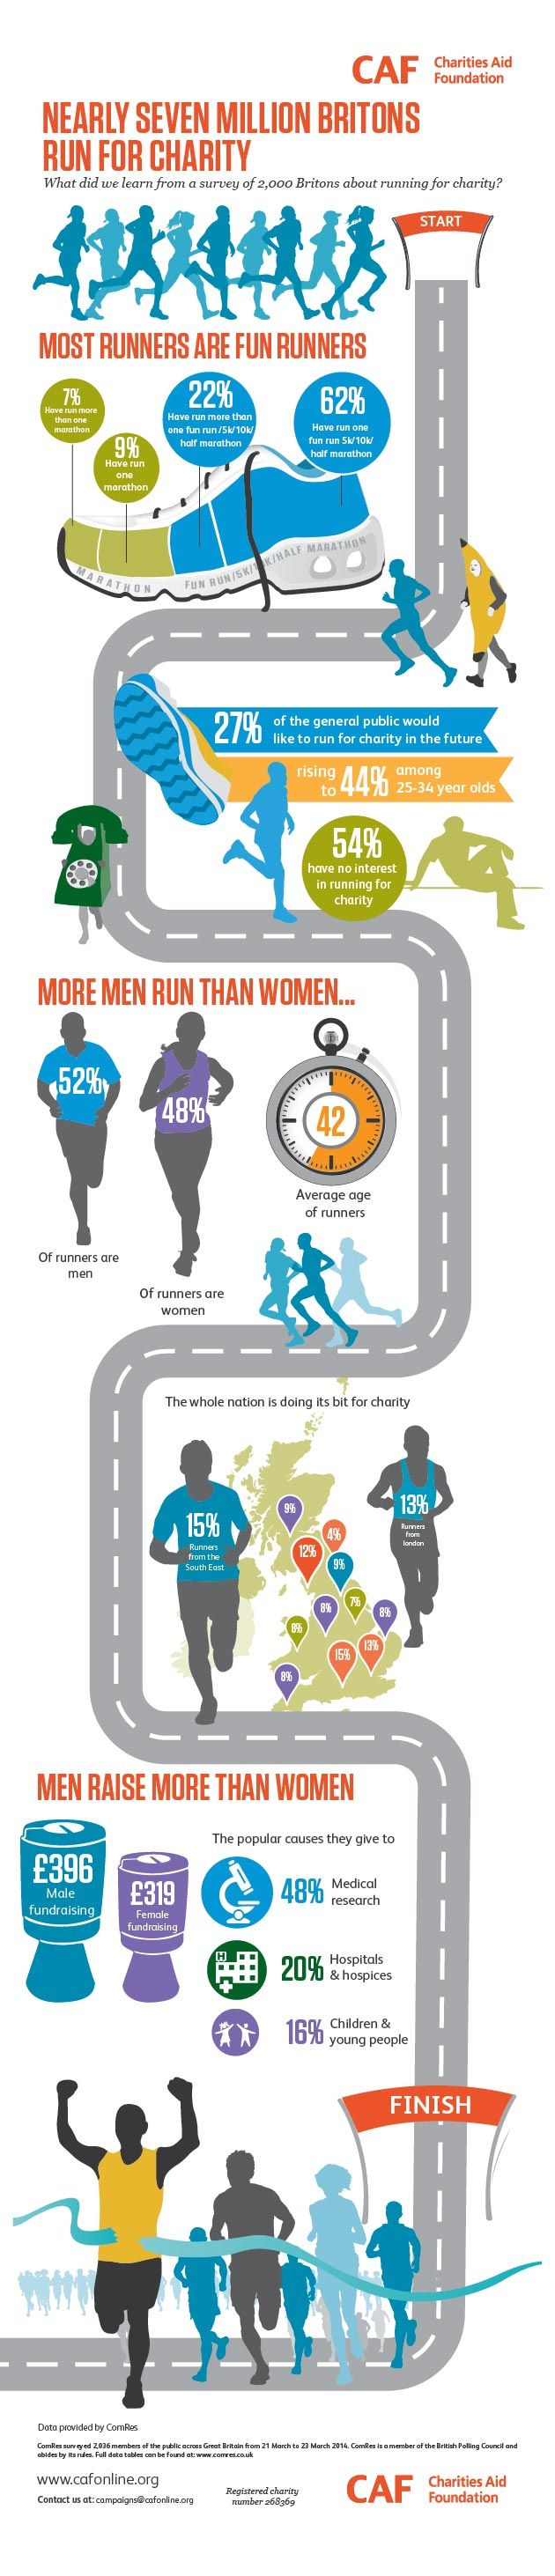 Charity running research for 2014 #charity #run #LondonMarathon https://www.cafonline.org/media-office/press-releases/2014/1304-charity-running-boom-men.aspx #fundraising #running #charity #marathon